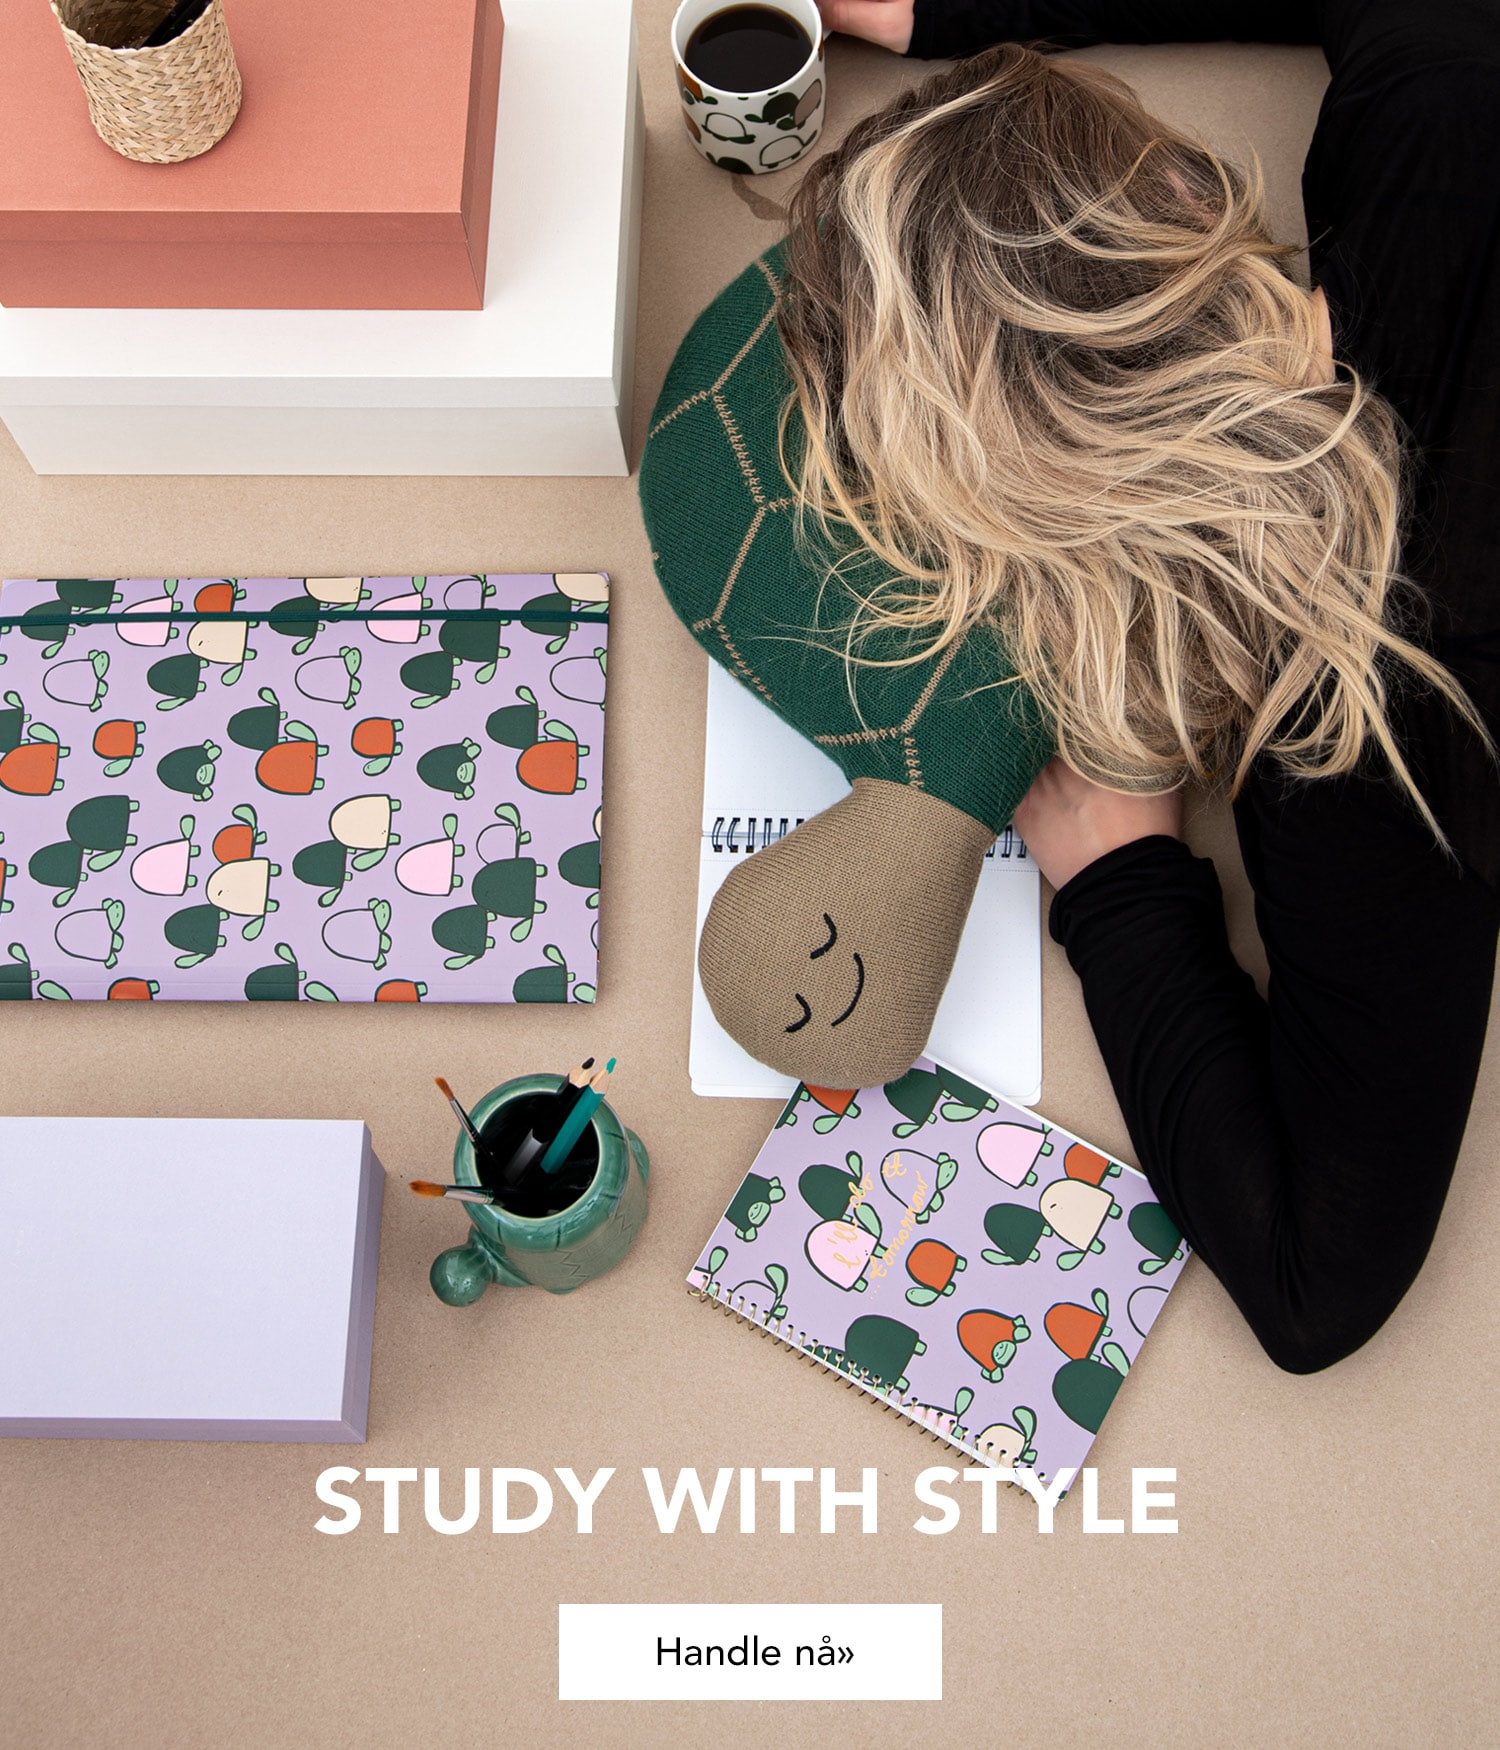 Study with style